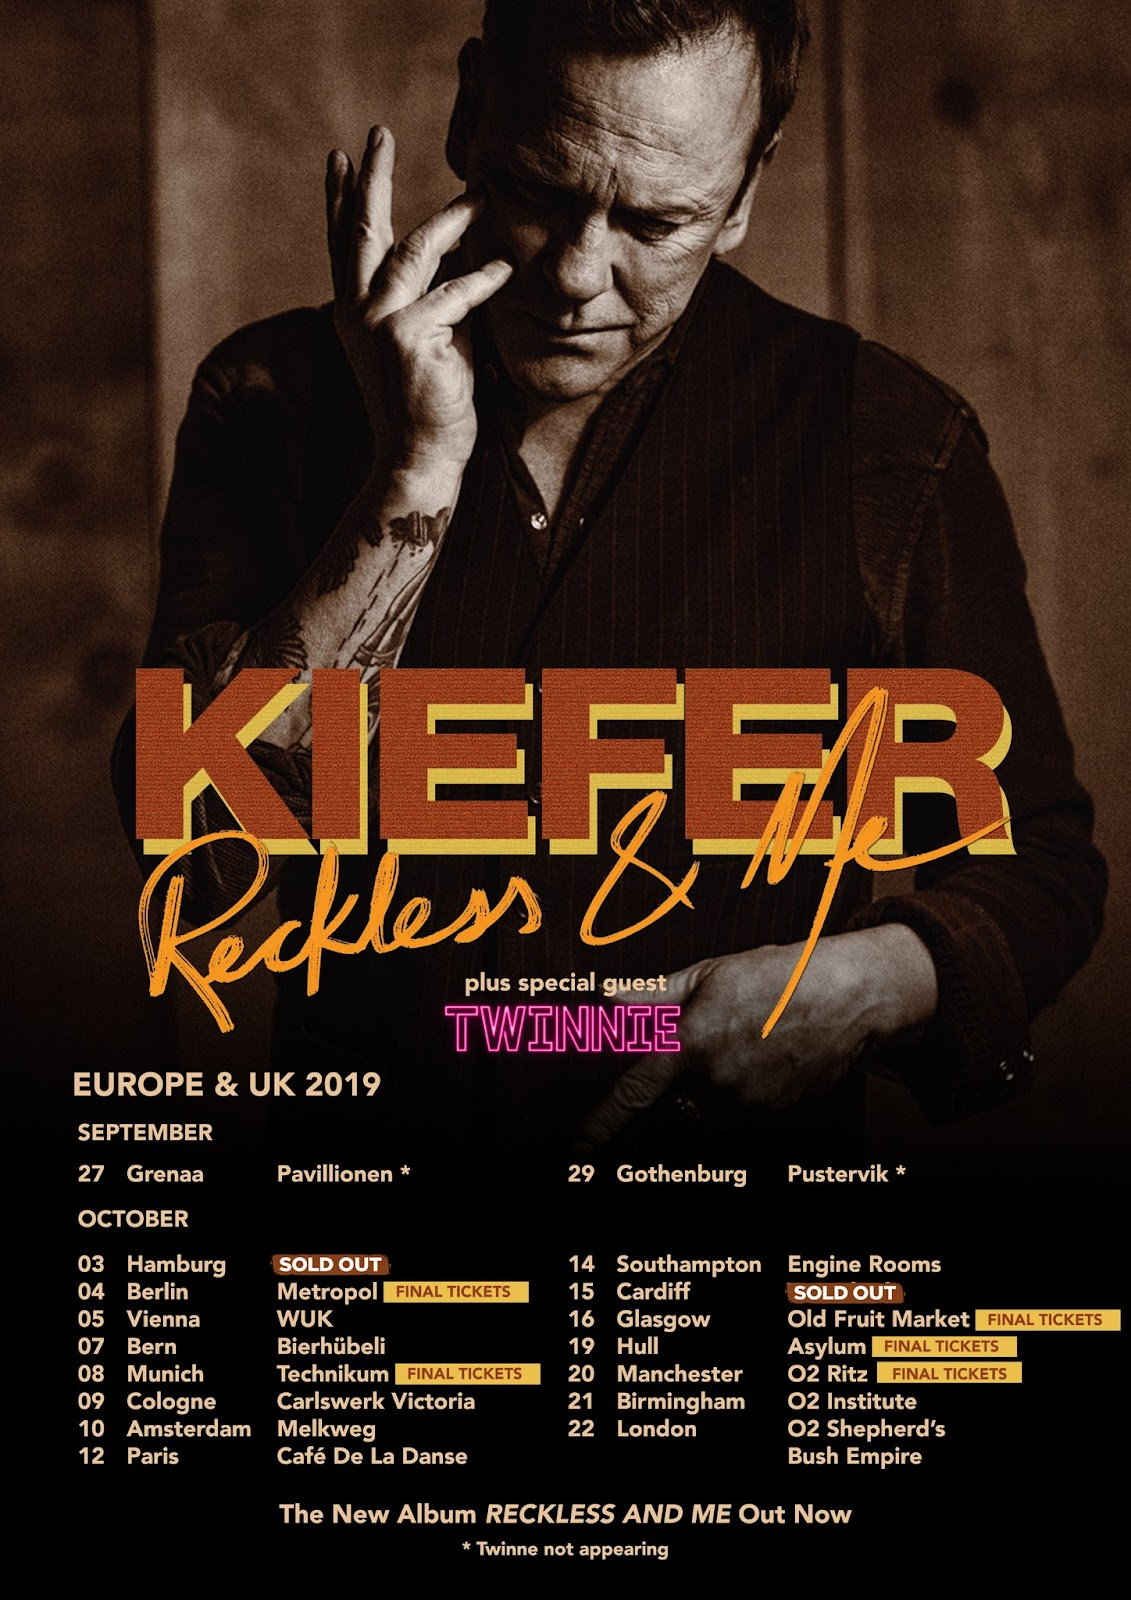 Kiefer Reckless And Me - Ottobre in Europa